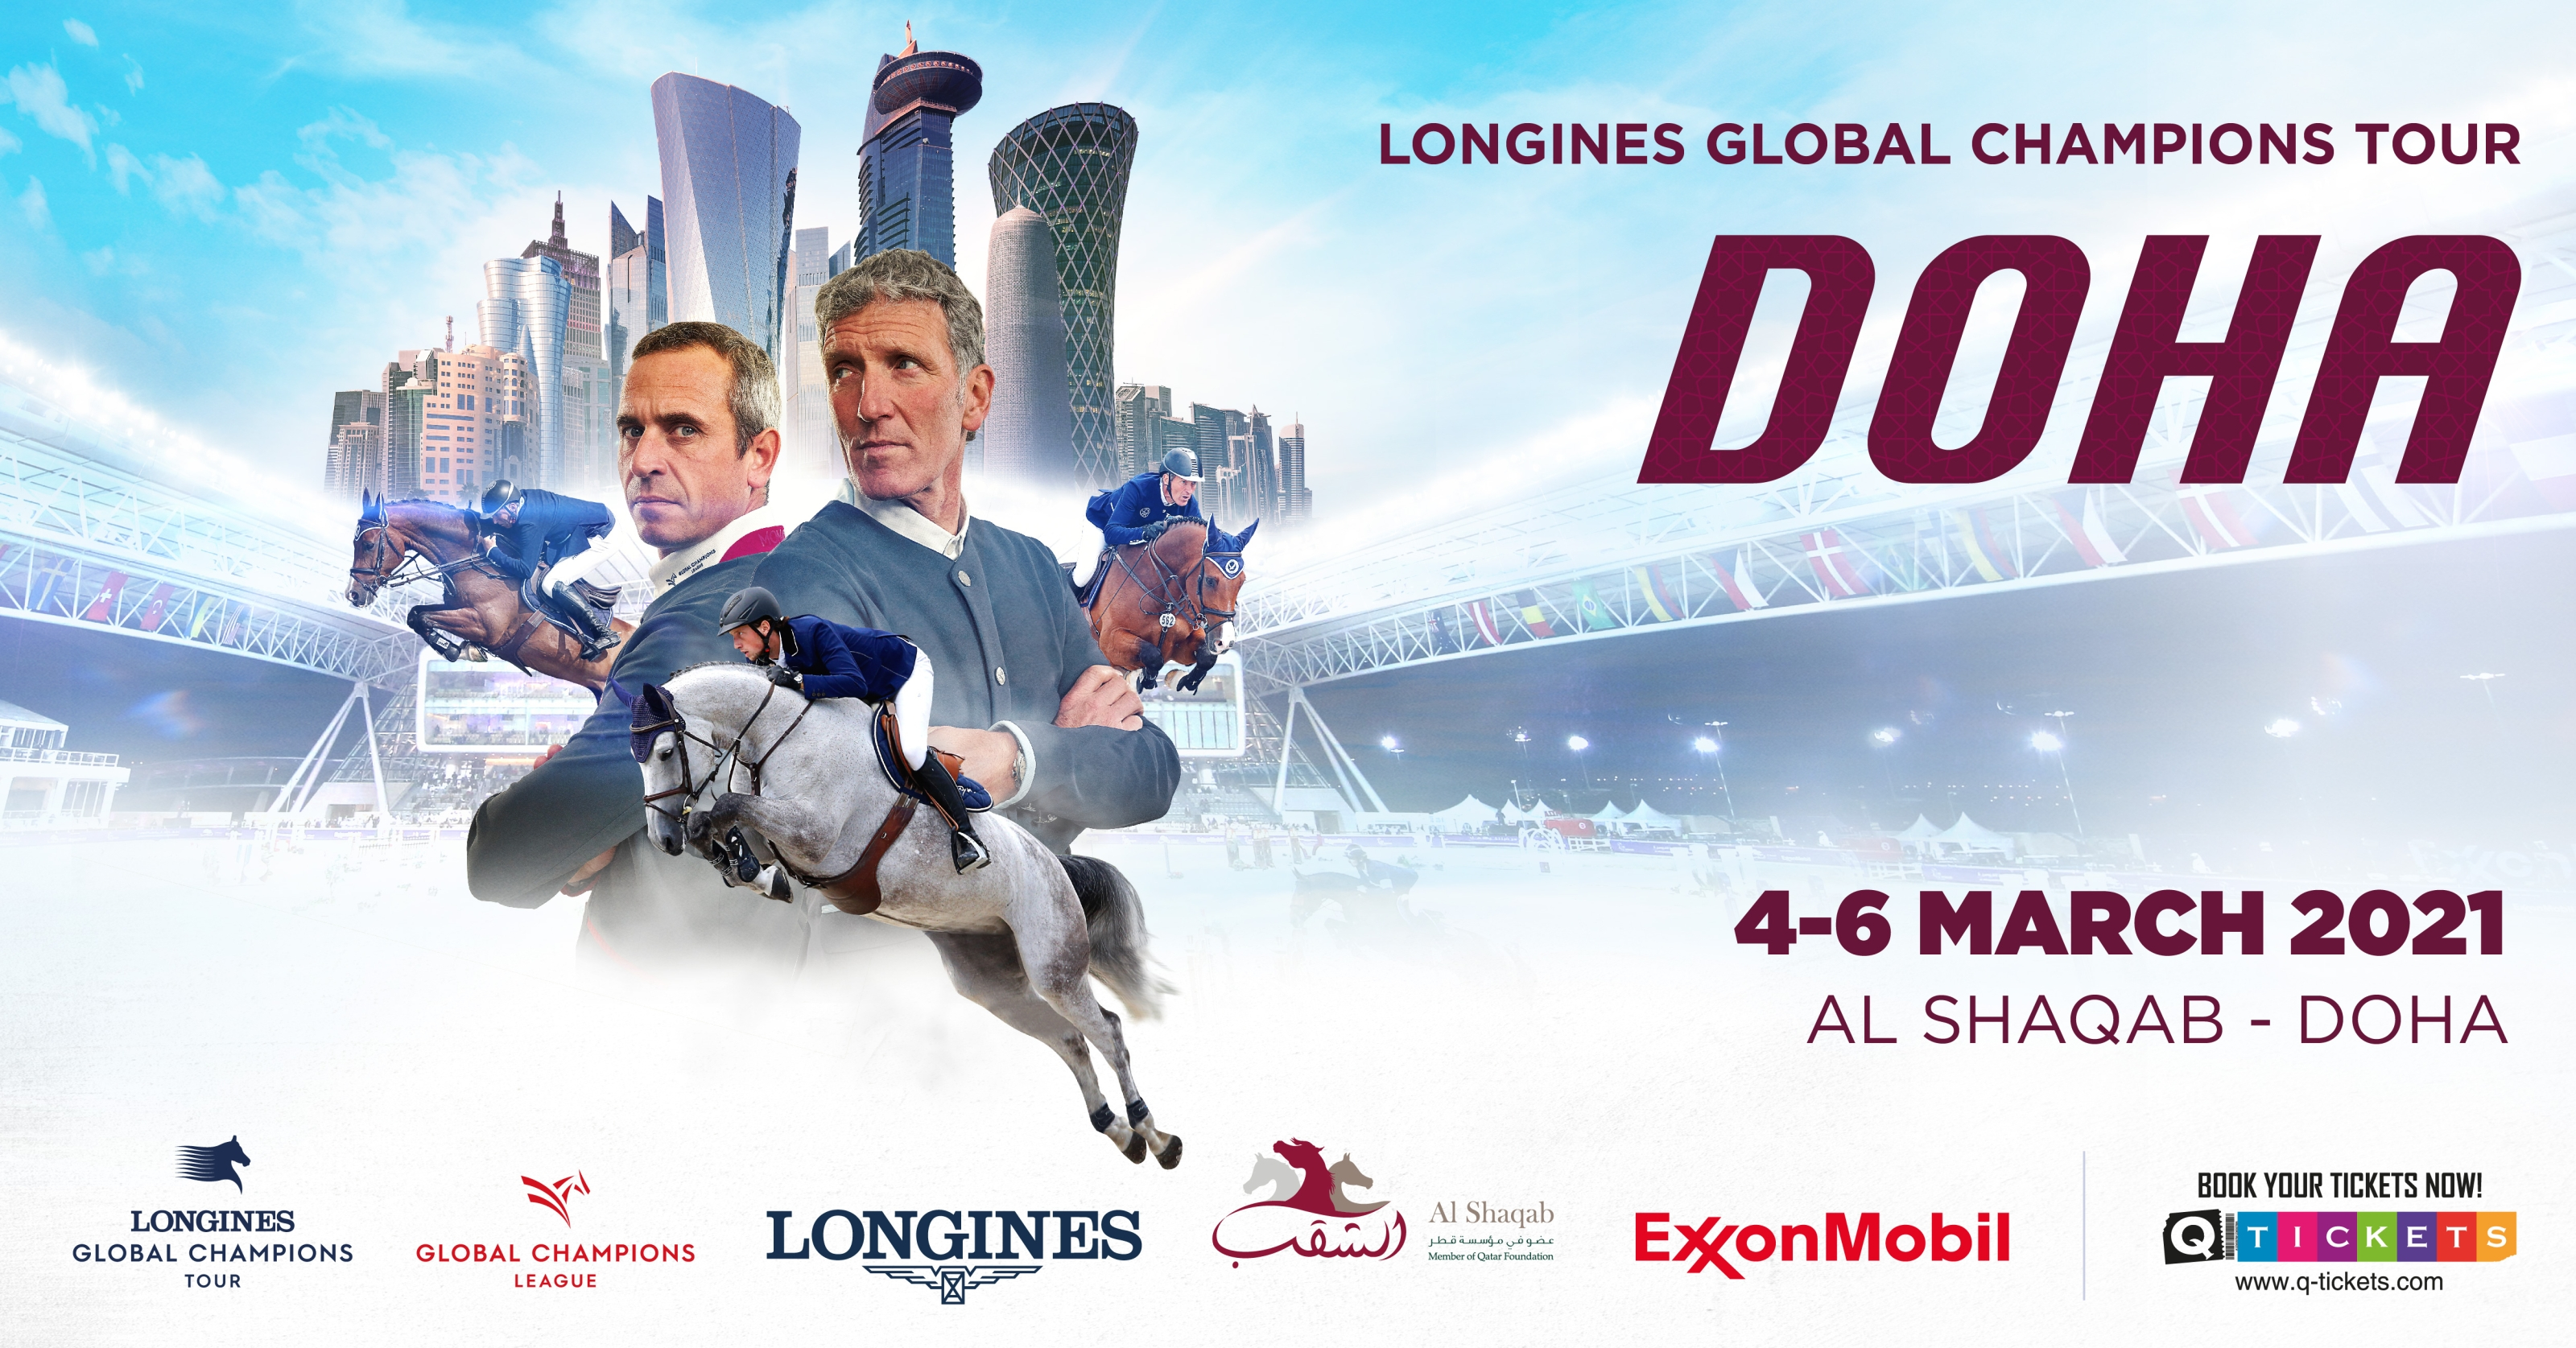 Al Shaqab to host spectacular LGCT and GCL 2021 season opener